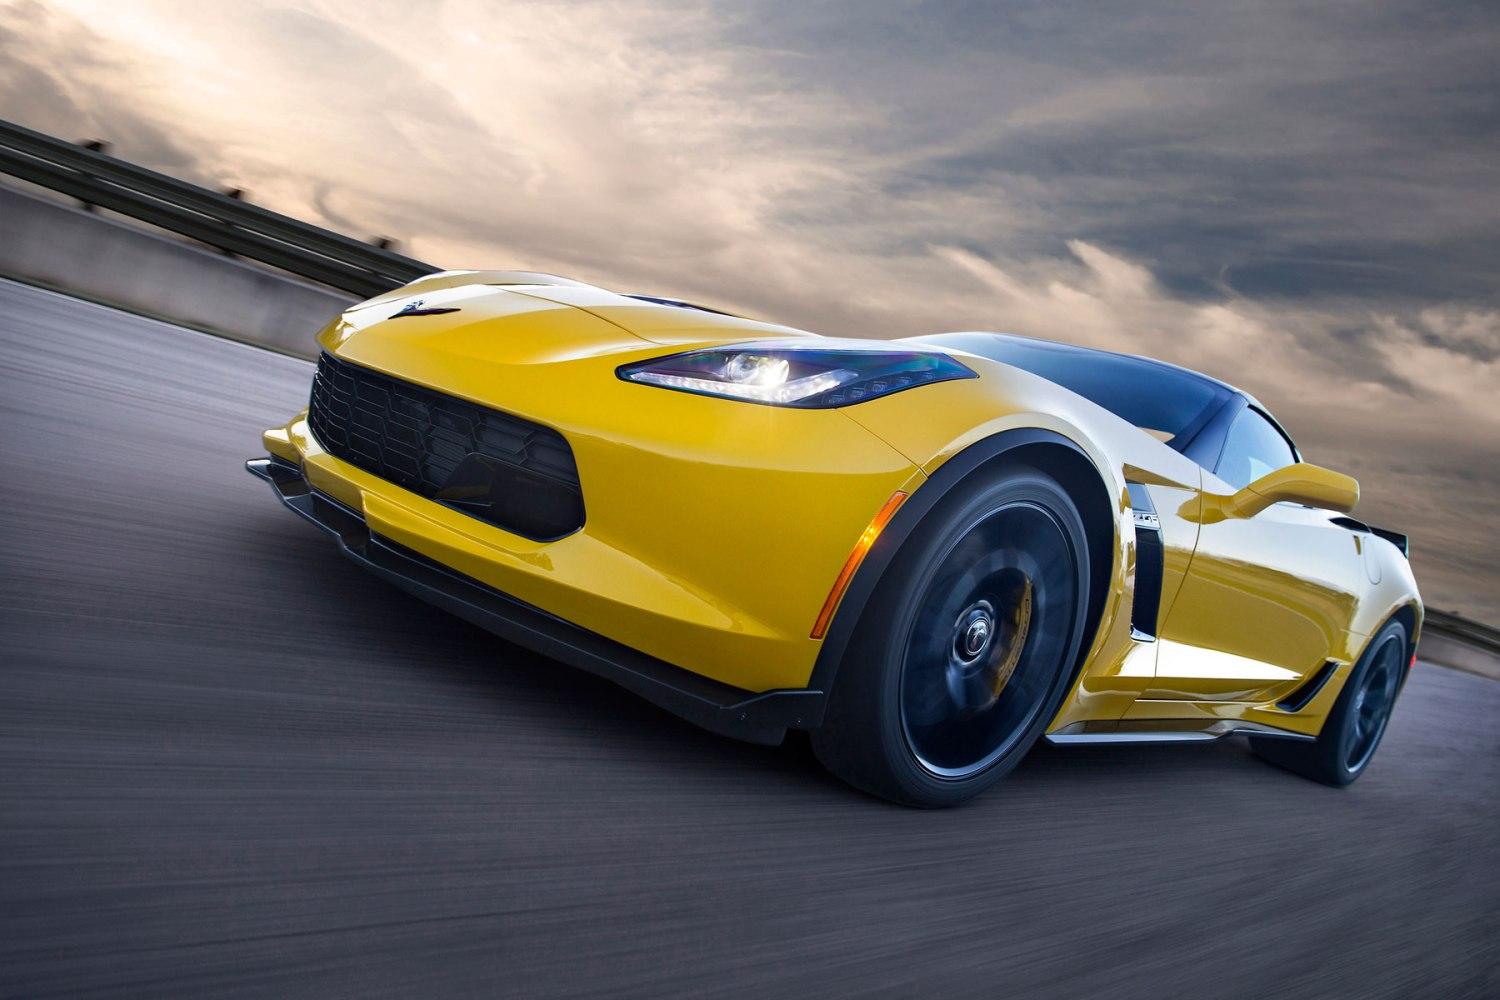 Chevrolet Corvette Z06 – 2.95 seconds (0-60mph)